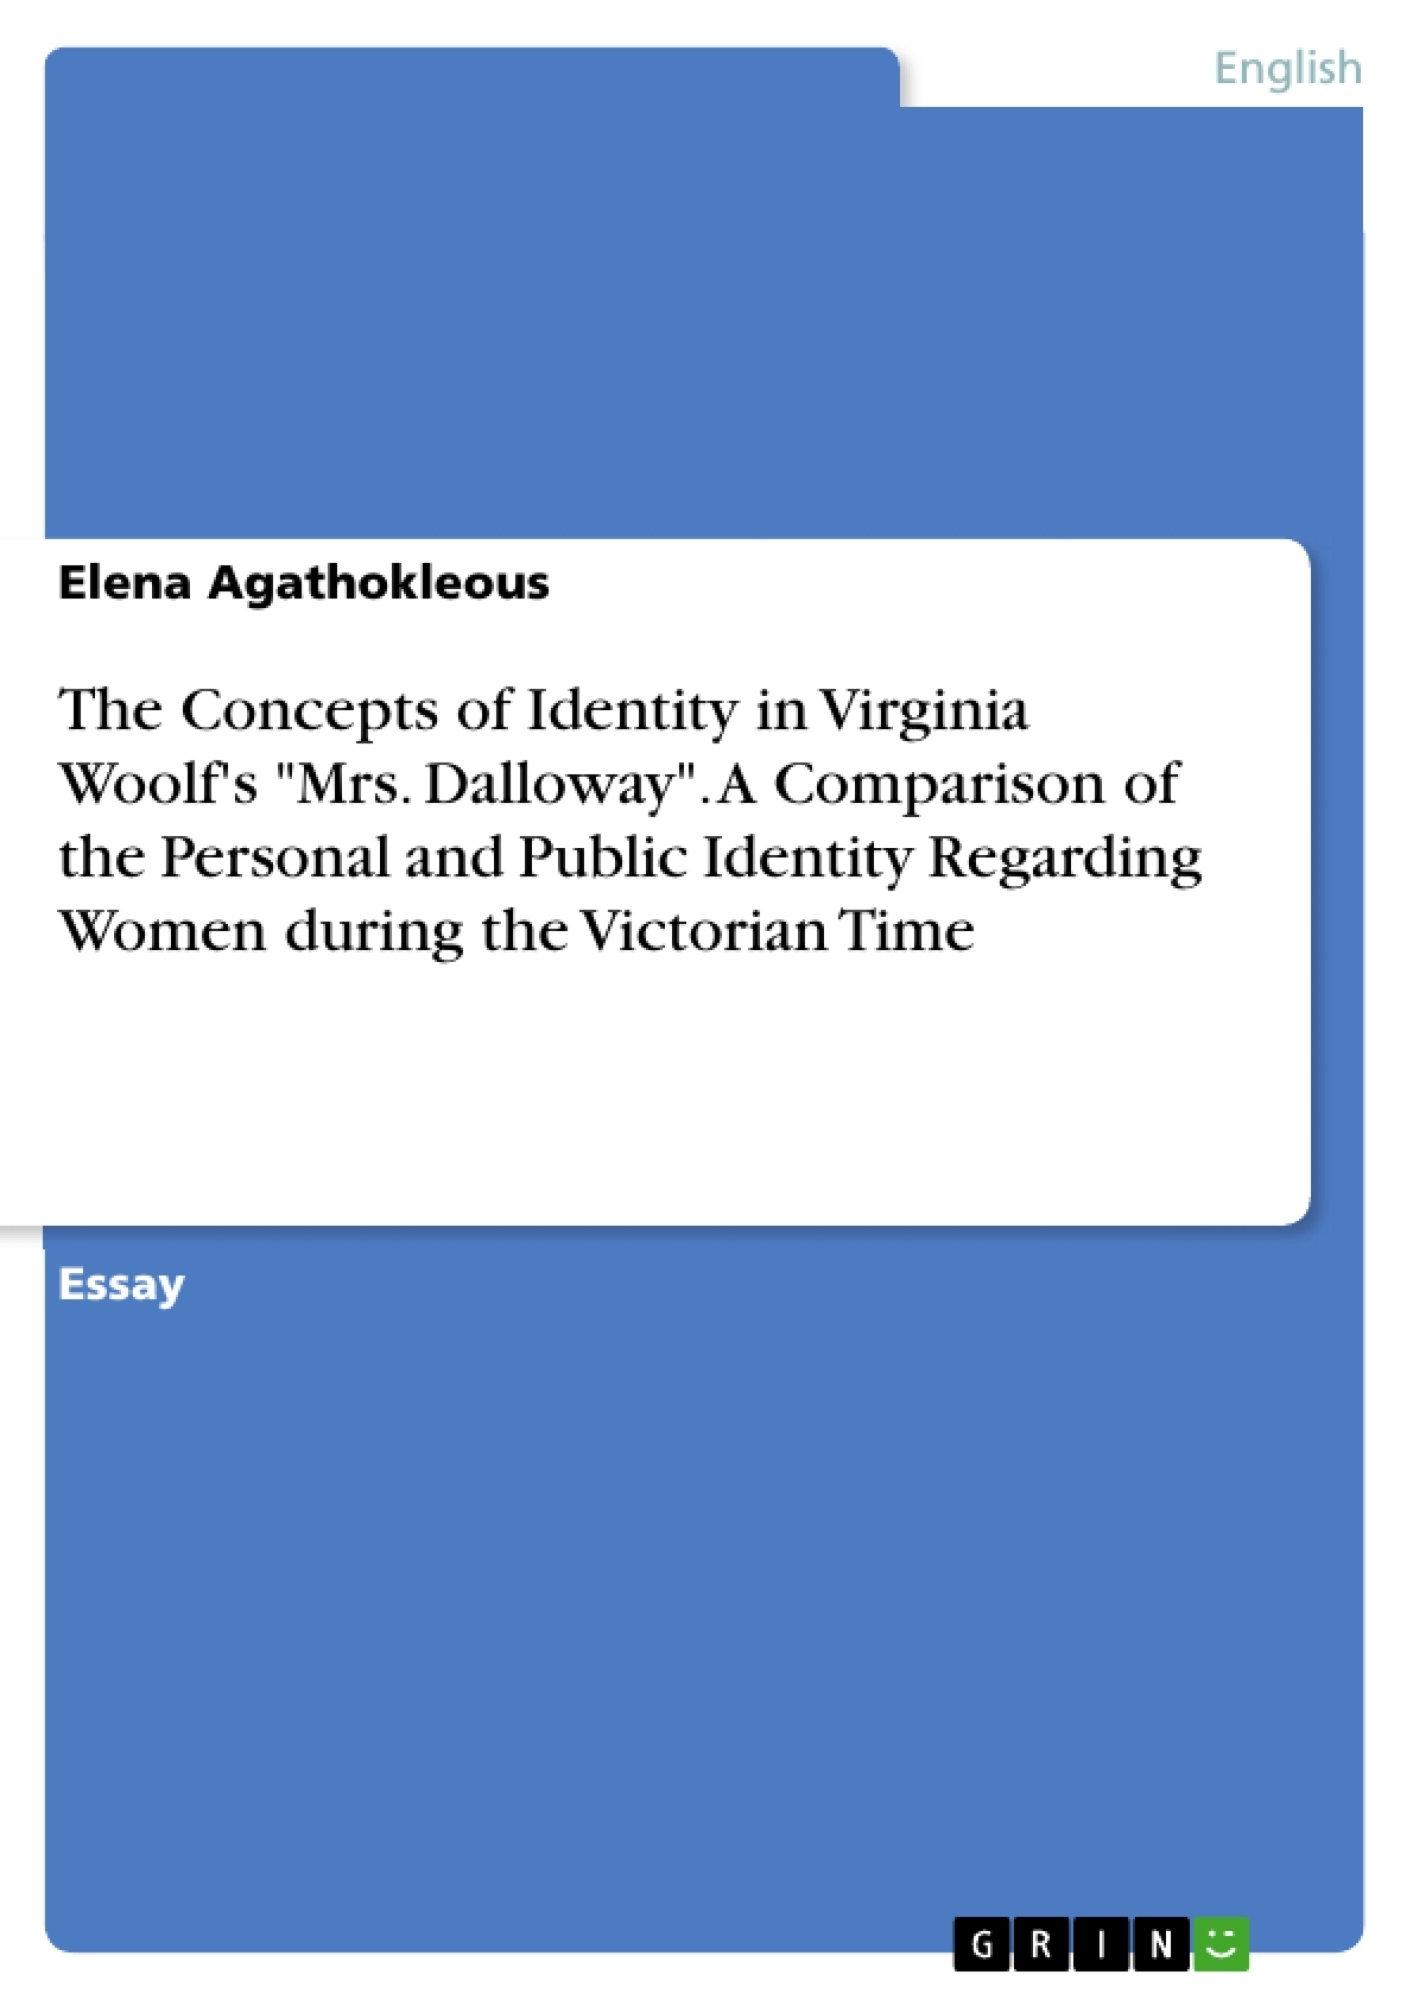 """Title: The Concepts of Identity in Virginia Woolf's """"Mrs. Dalloway"""". A Comparison of the Personal and Public Identity Regarding Women during the Victorian Time"""